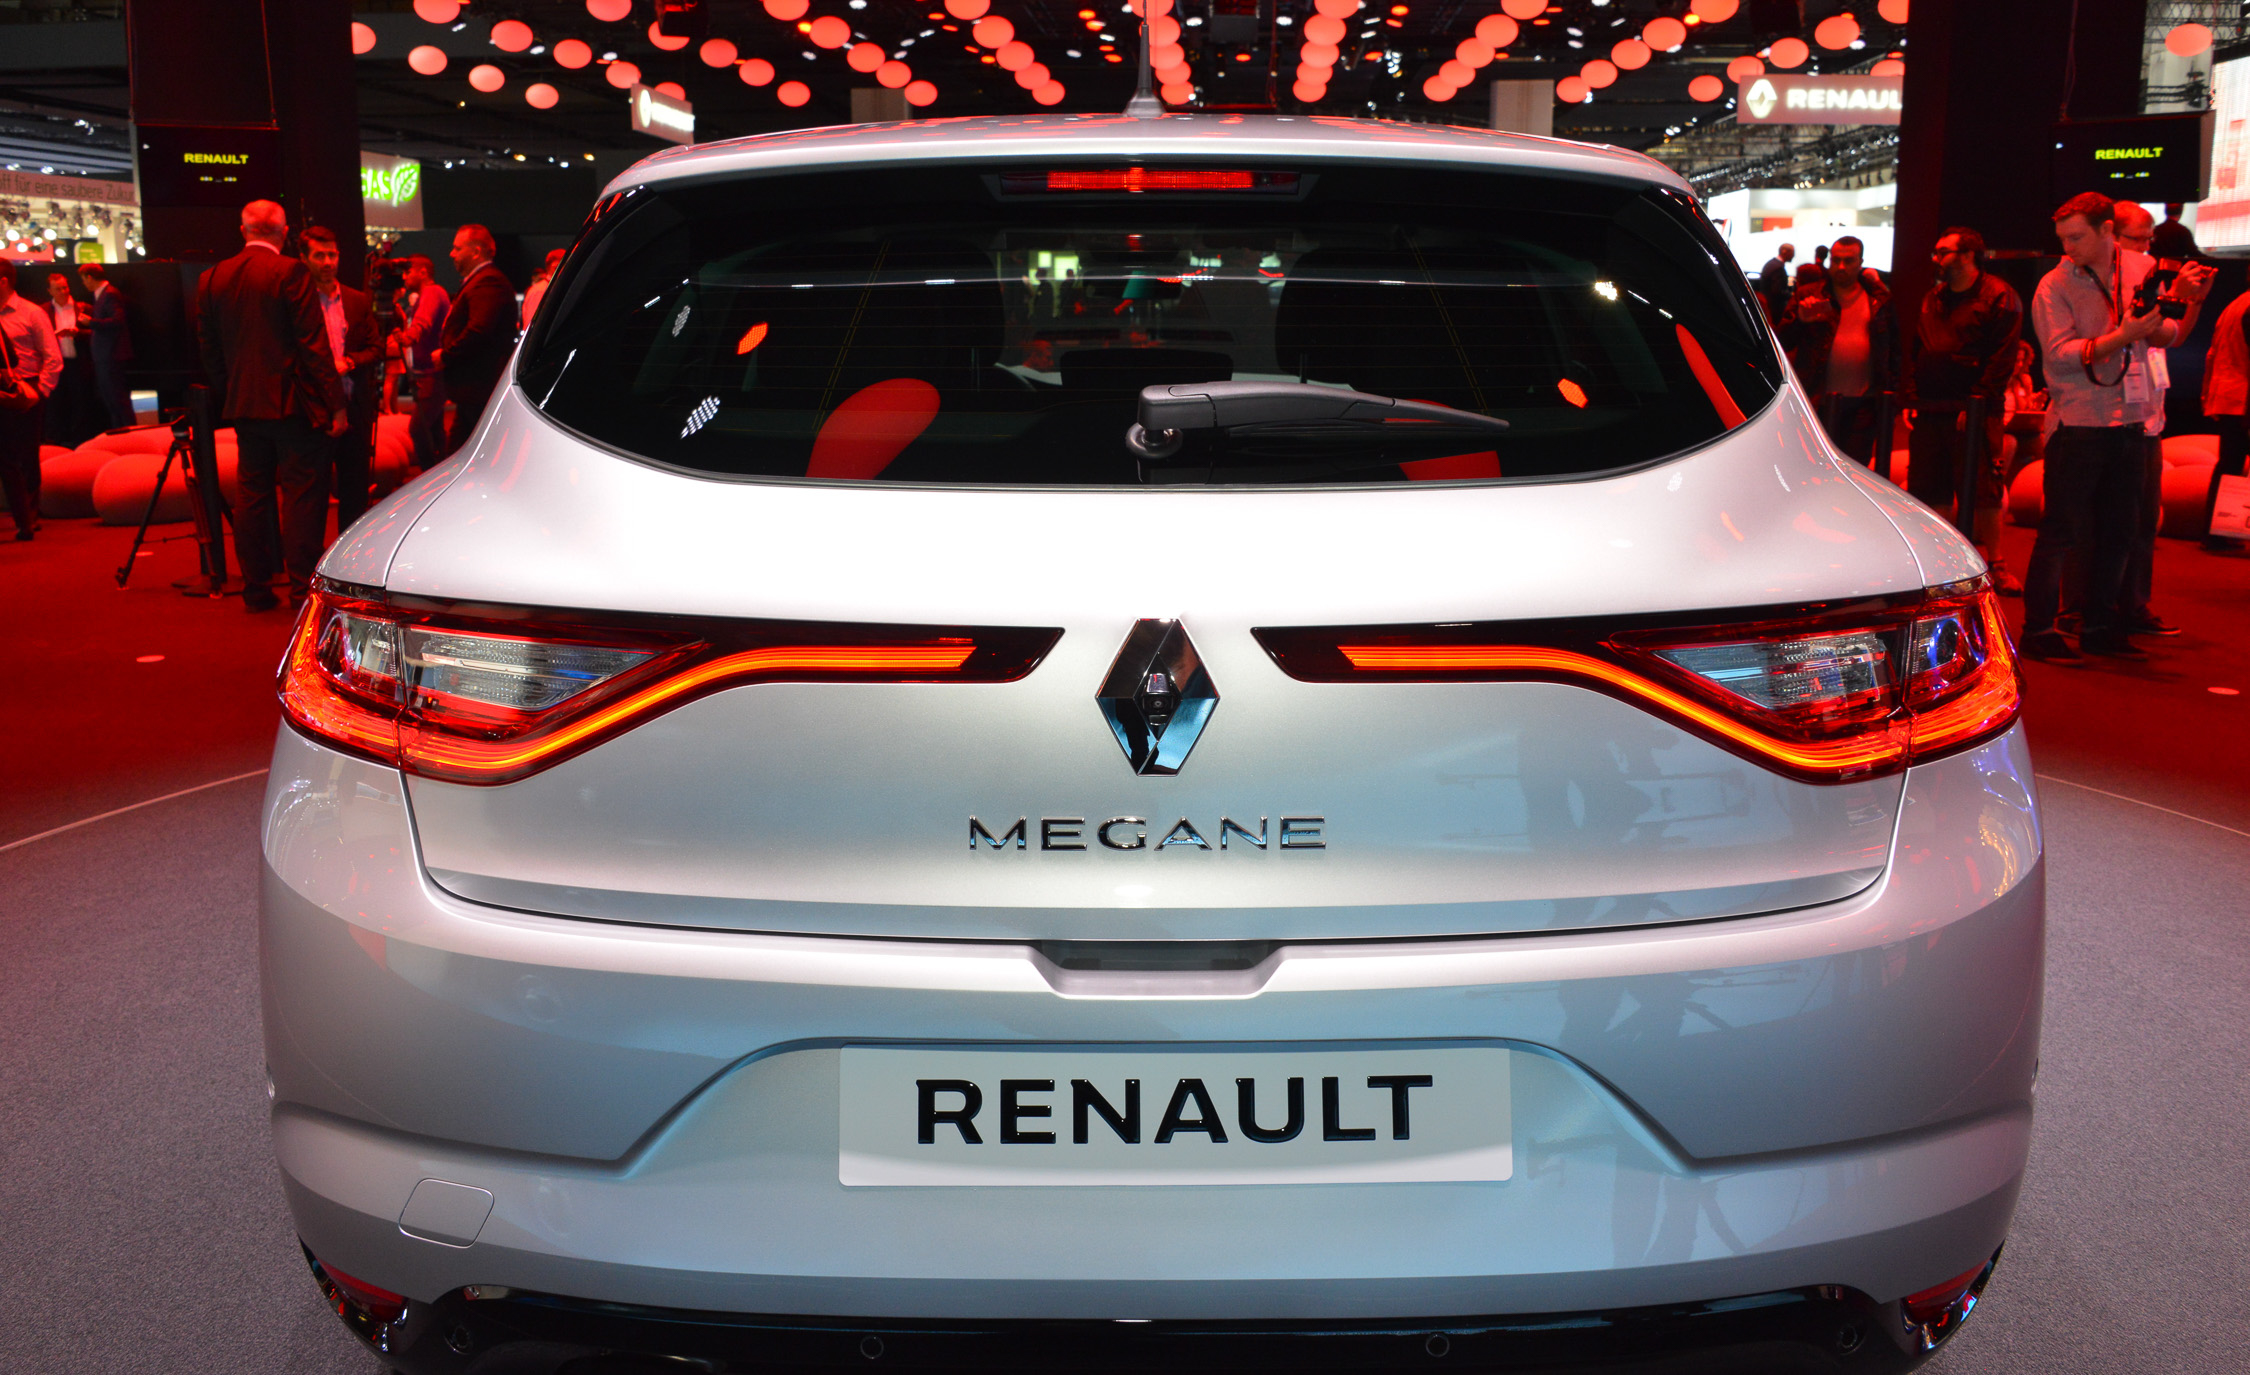 2016 Renault Megane Rear End Photo (View 6 of 27)